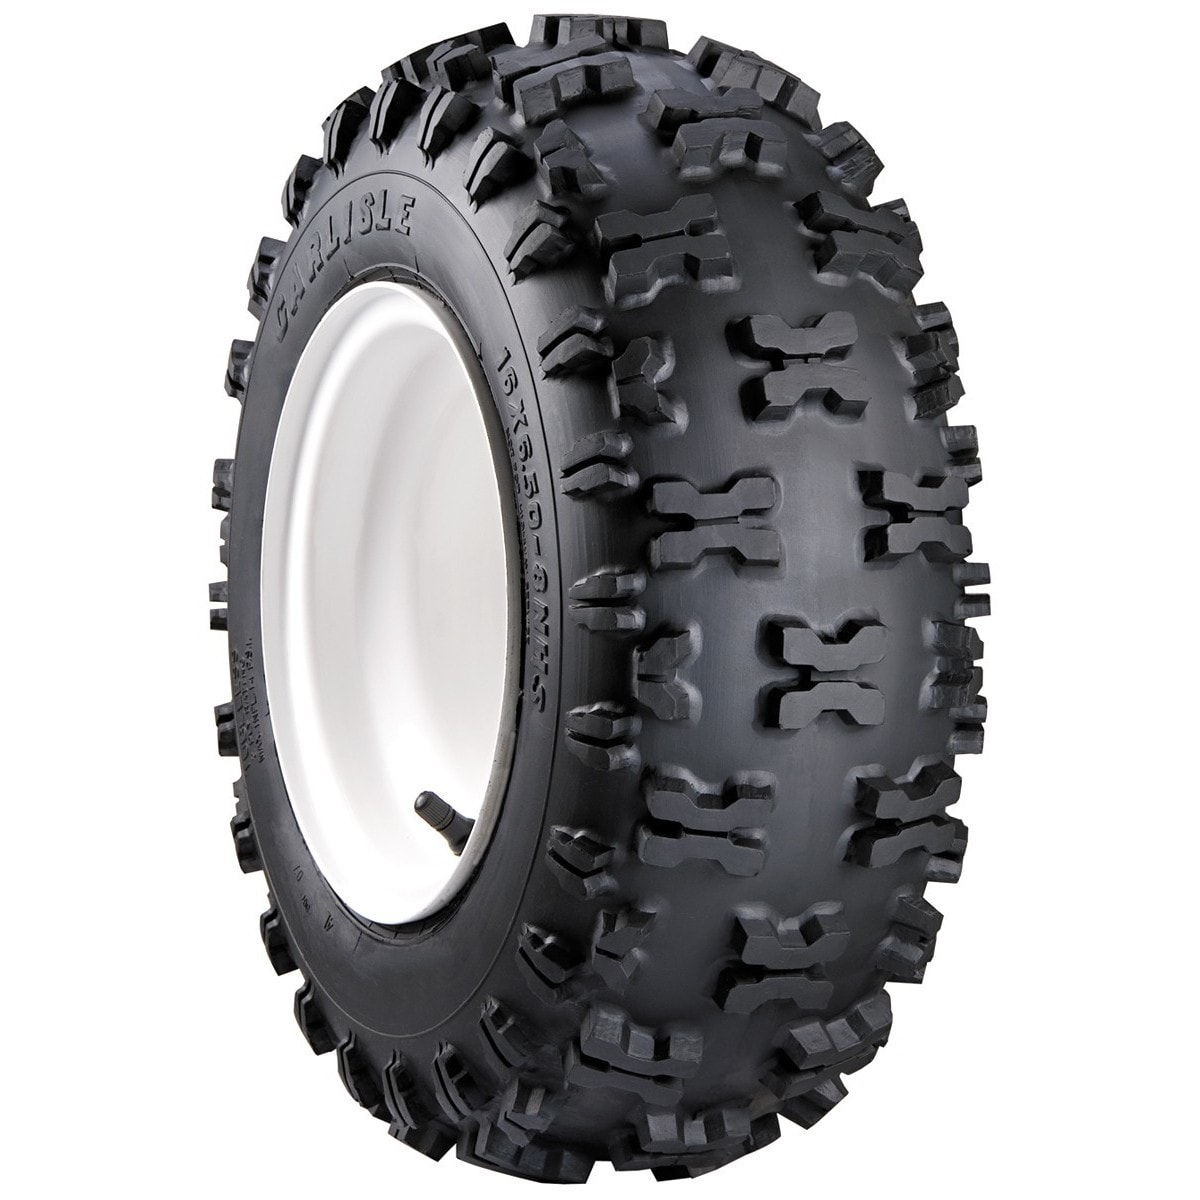 Carlisle Snow Hog Snow Thrower Tire - 16X650-8 LRA/2 ply ...